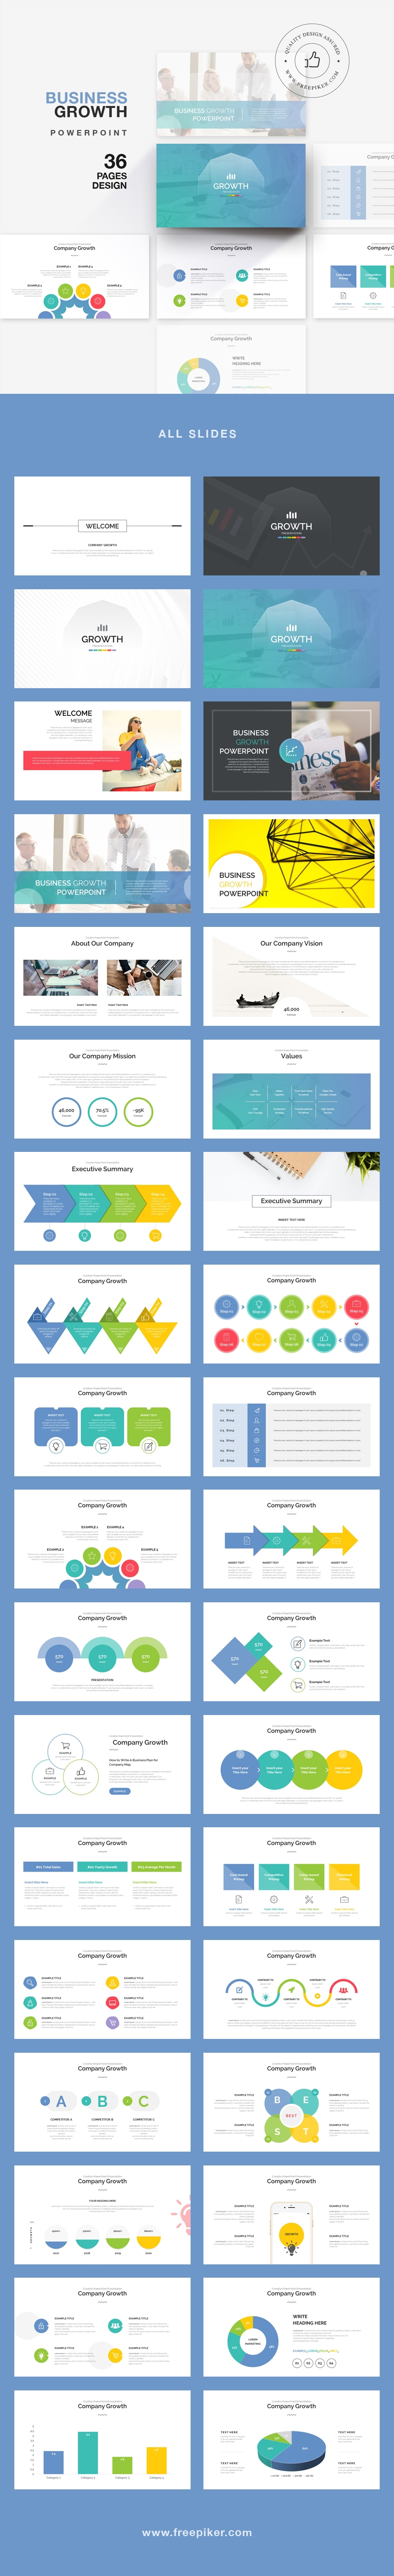 Business Growth Pith Deck PowerPoint